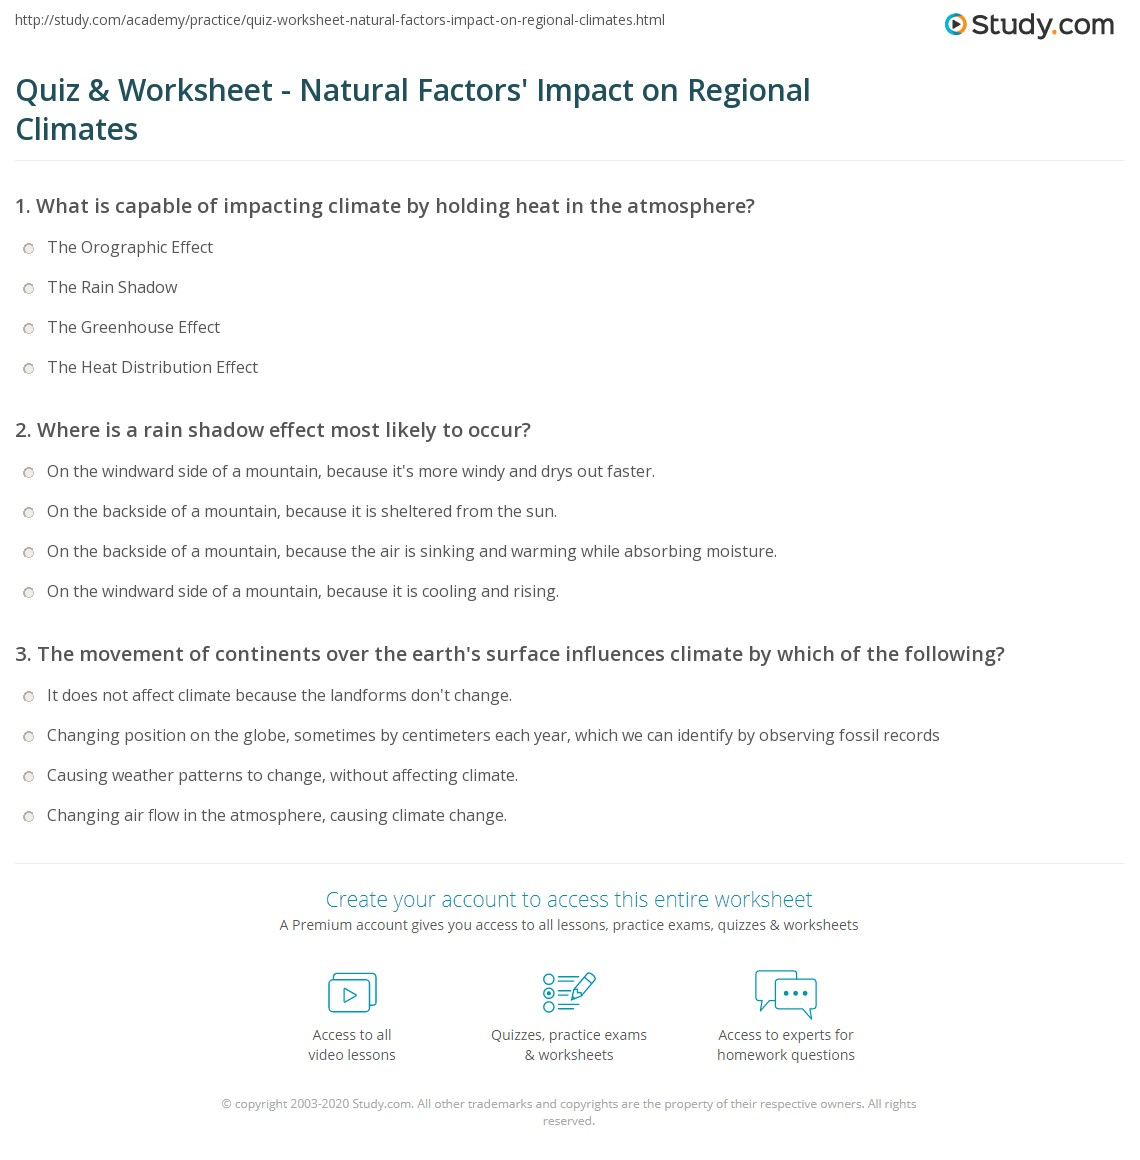 Printables Factors Affecting Climate Worksheet quiz worksheet natural factors impact on regional climates print that determine a regions climate worksheet